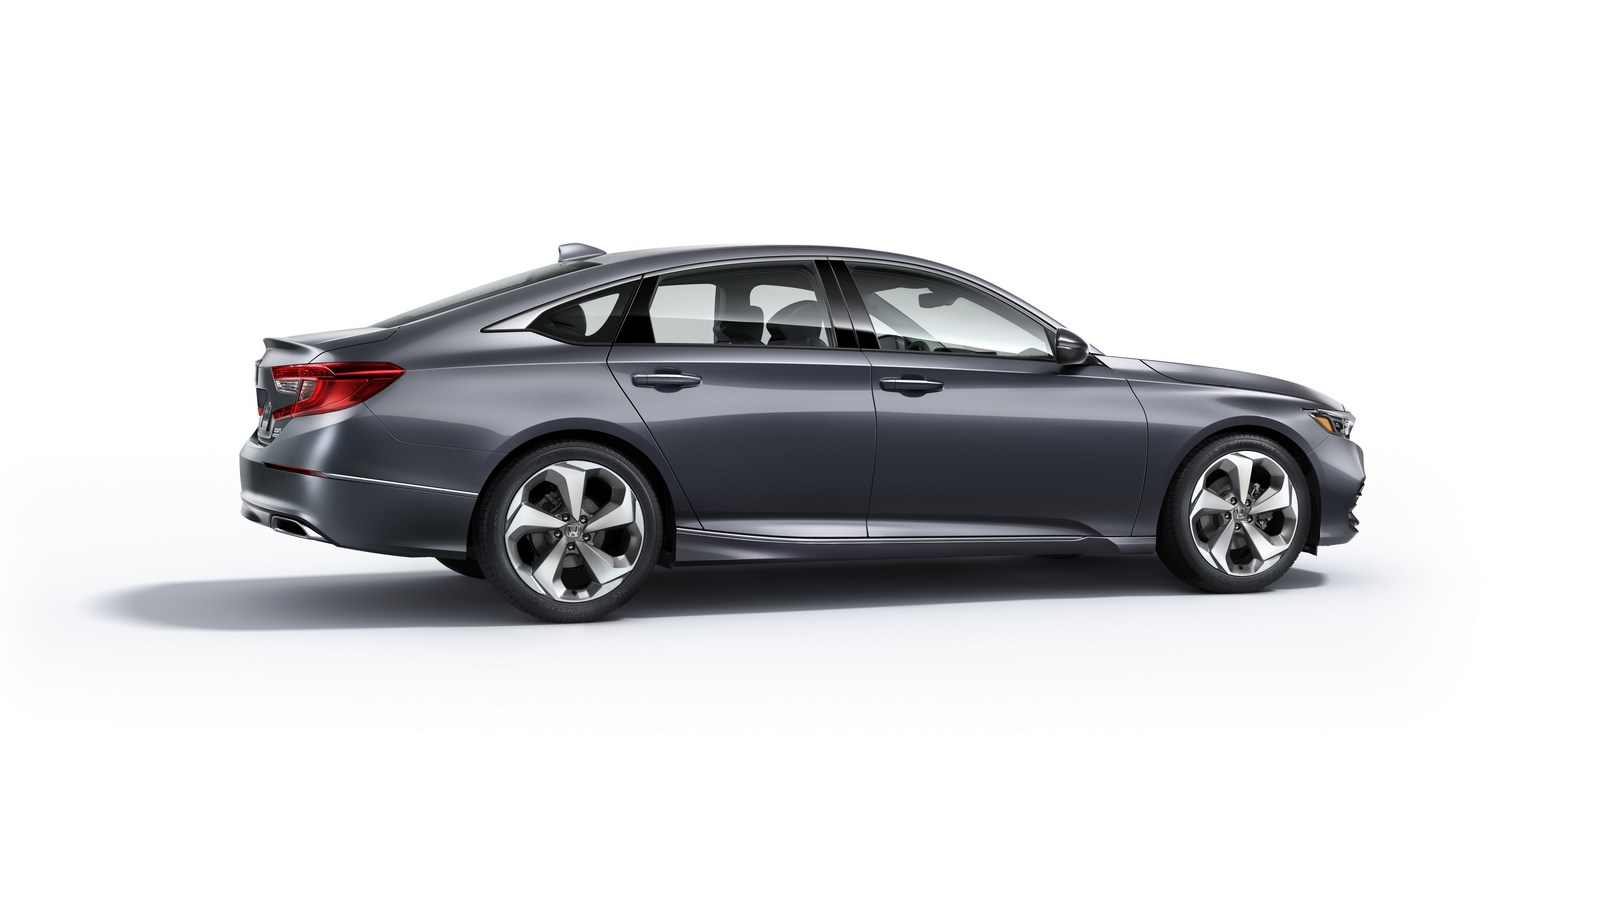 2018 Honda Accord Now In Production At Marysville Auto Plant - autoevolution